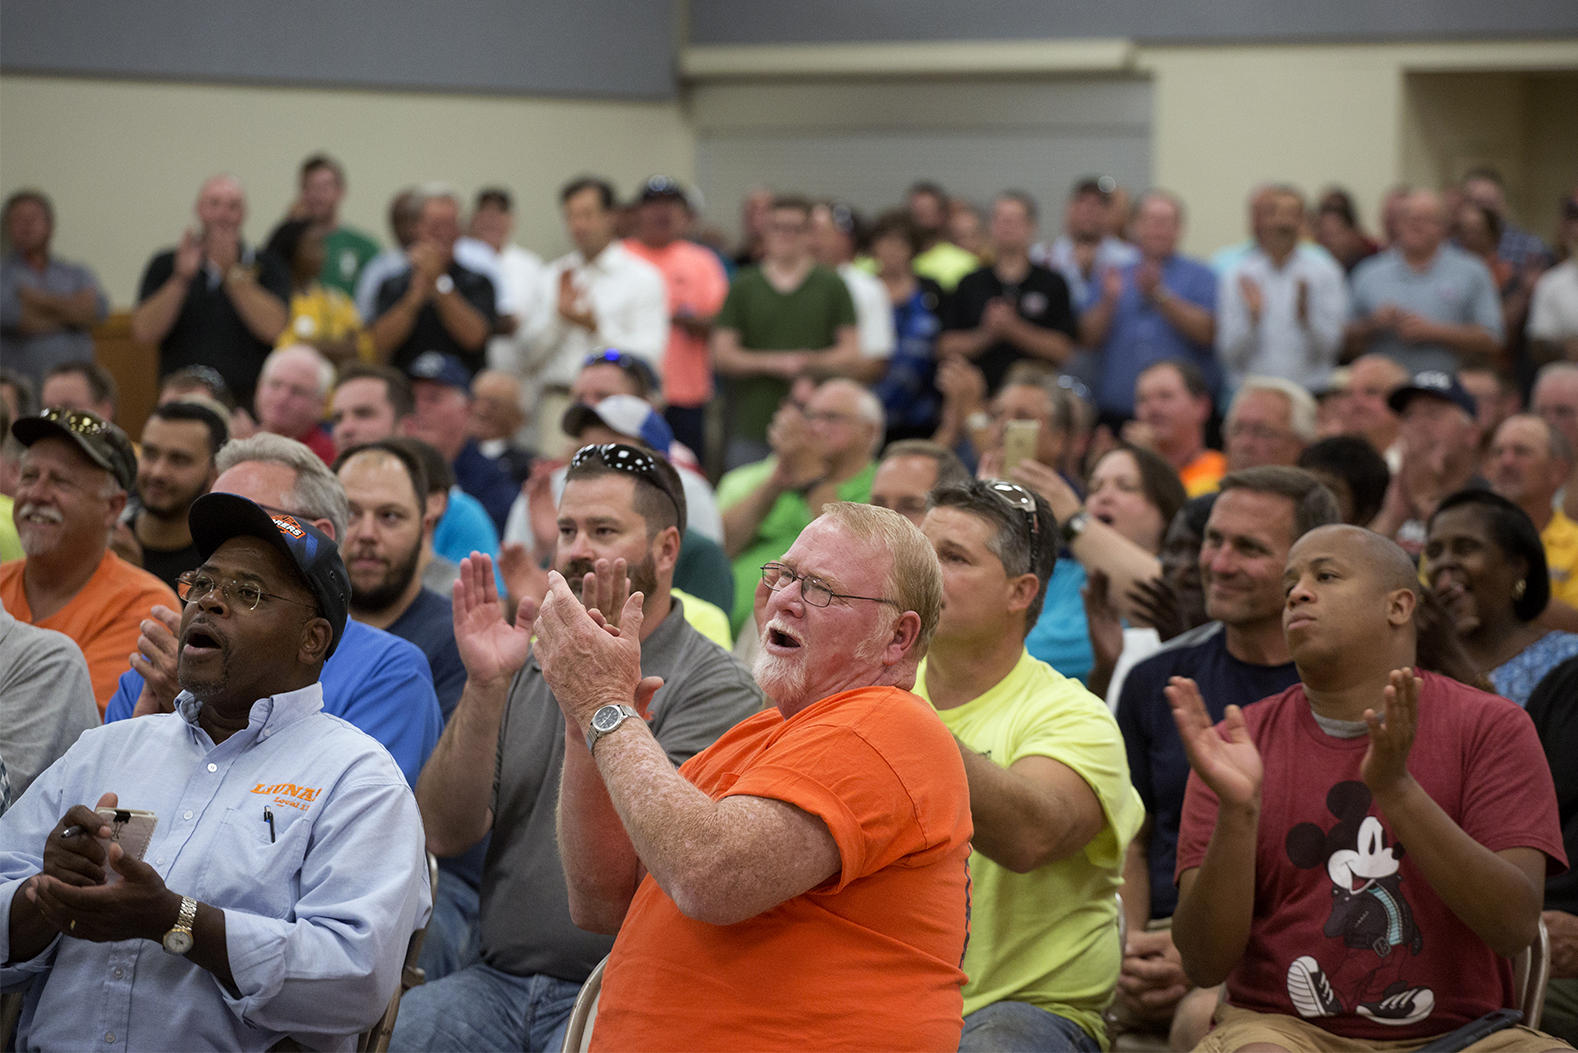 union members gathered at the international brotherhood of electrical workers hall earlier this month to notarize and turn in petitions to force a statewide